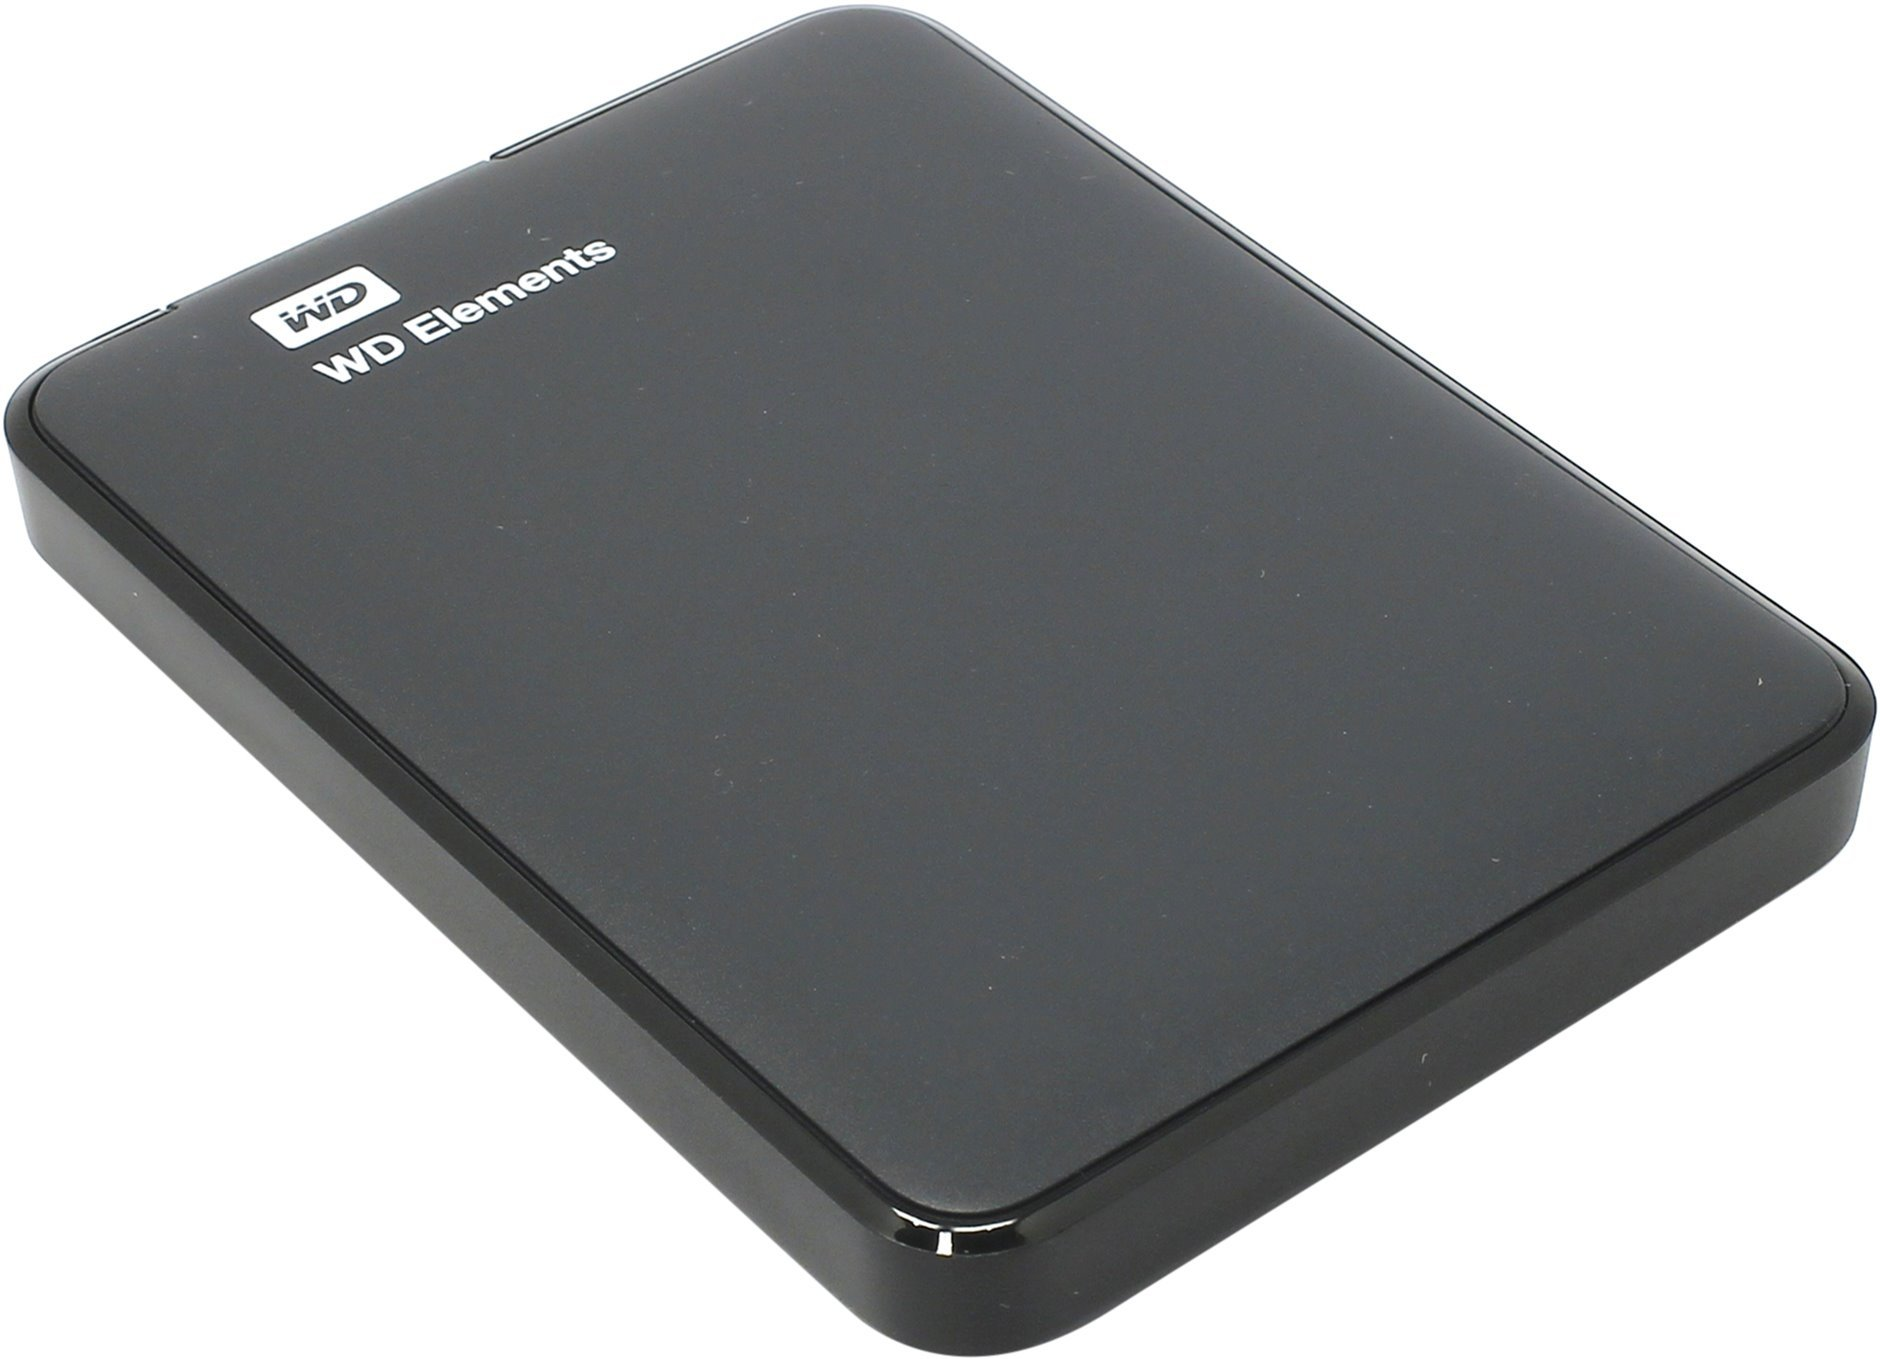 Внешний жёсткий диск WD Elements Portable 500Gb WDBUZG5000ABK-EESN Black